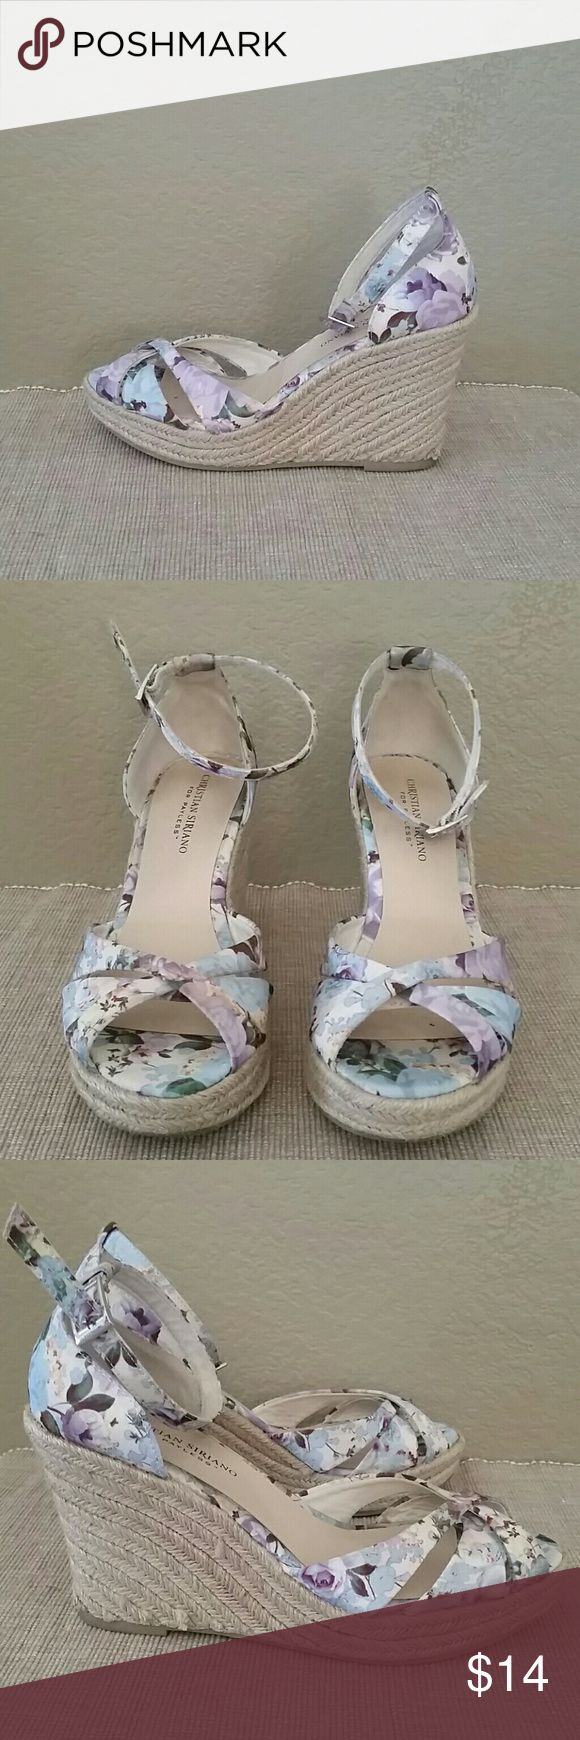 Christan Siriano floral wedge espadrilles sandal 9 Christian Siriano for Payless floral wedges, Espadrilles, sandals, adjustable ankle strap, 1 inch platform, 4 inch total heel height, size 9, pre-owned Christian Siriano Shoes Espadrilles